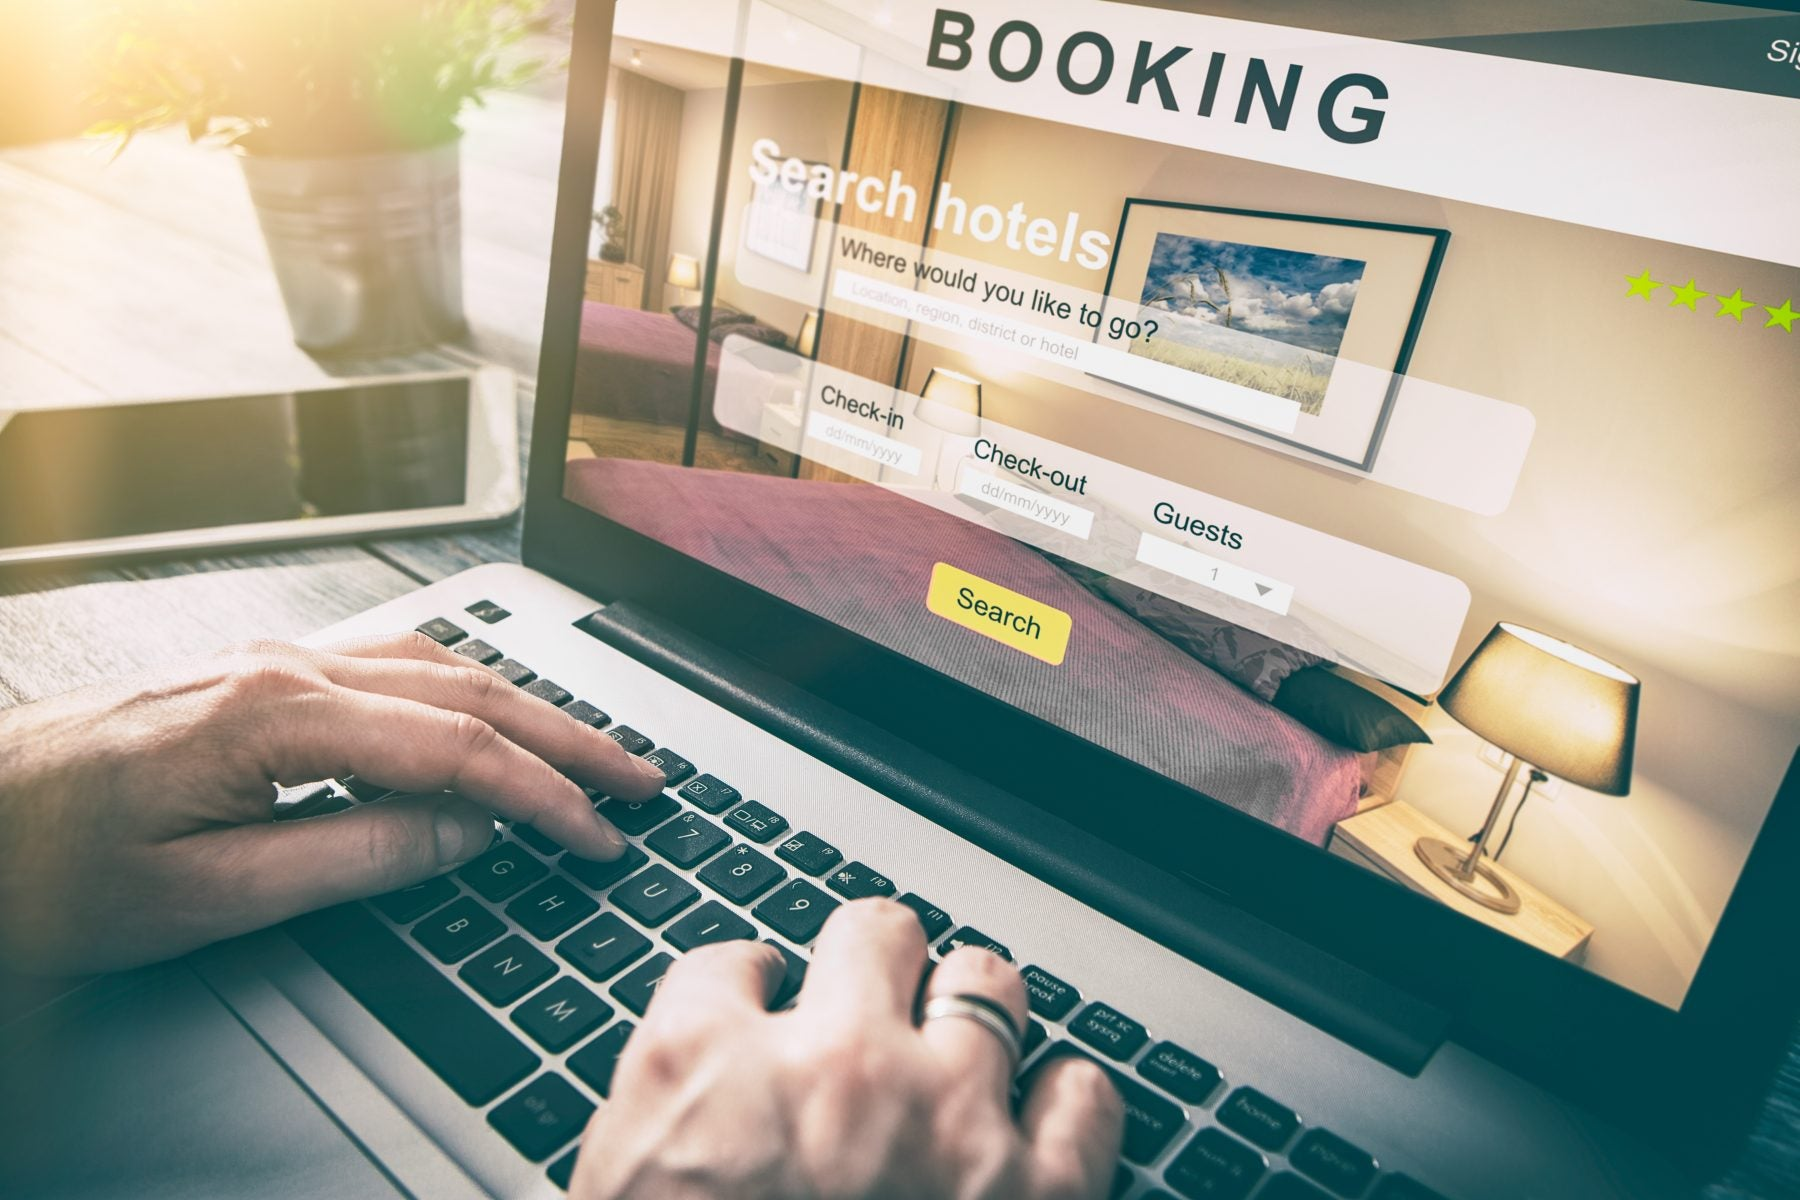 Fact or Fiction: Do Airlines Raise Your Ticket Price Based on Your Browser History?